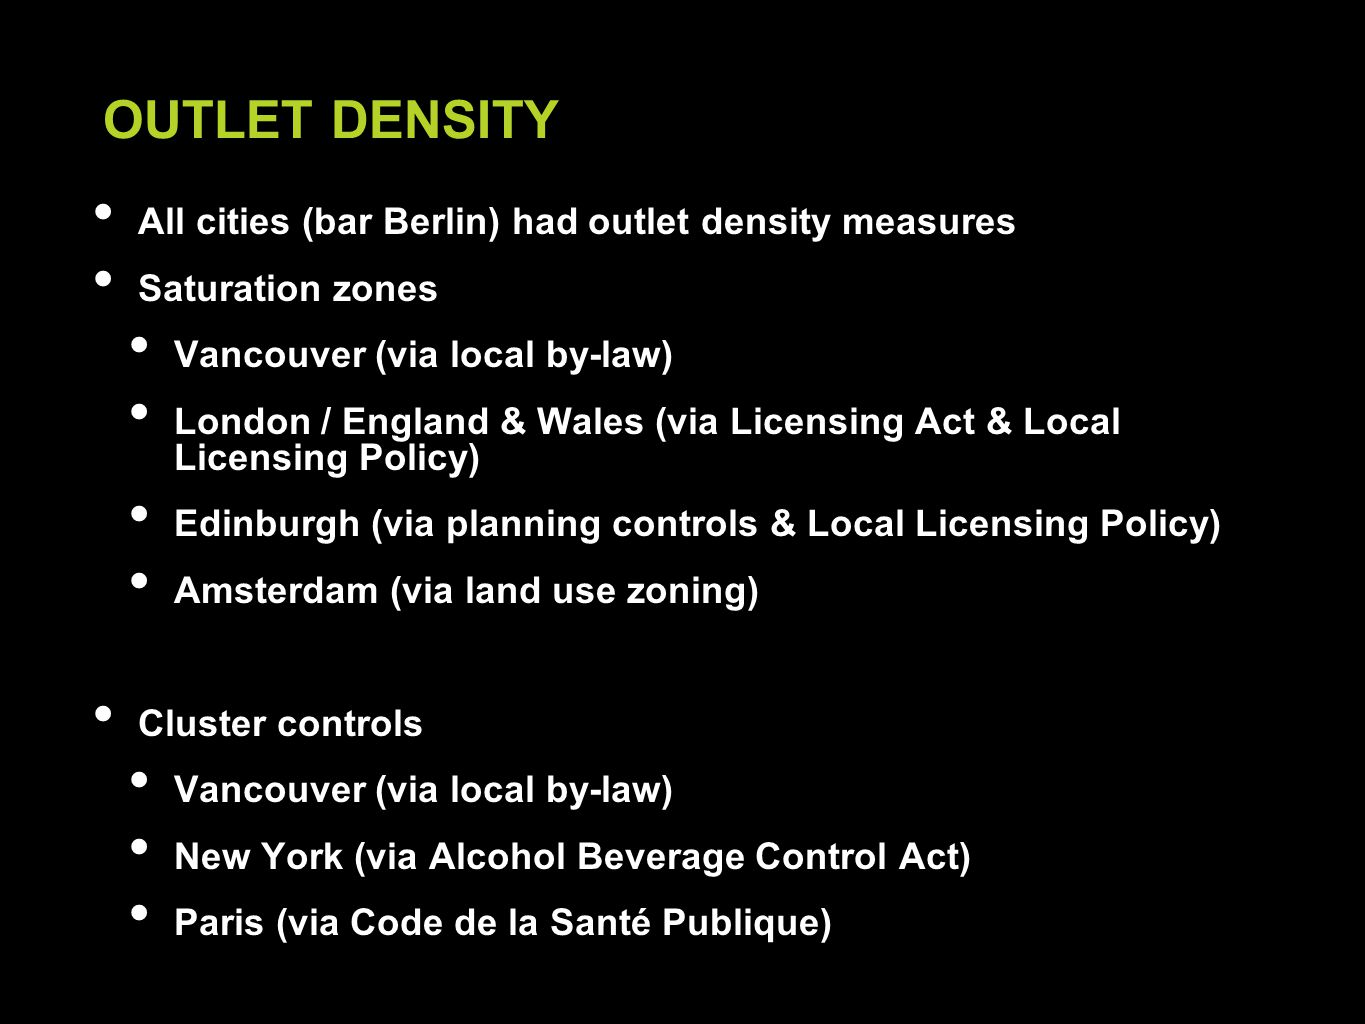 All cities (bar Berlin) had outlet density measures Saturation zones Vancouver (via local by-law) London / England & Wales (via Licensing Act & Local Licensing Policy) Edinburgh (via planning controls & Local Licensing Policy) Amsterdam (via land use zoning) Cluster controls Vancouver (via local by-law) New York (via Alcohol Beverage Control Act) Paris (via Code de la Santé Publique) OUTLET DENSITY